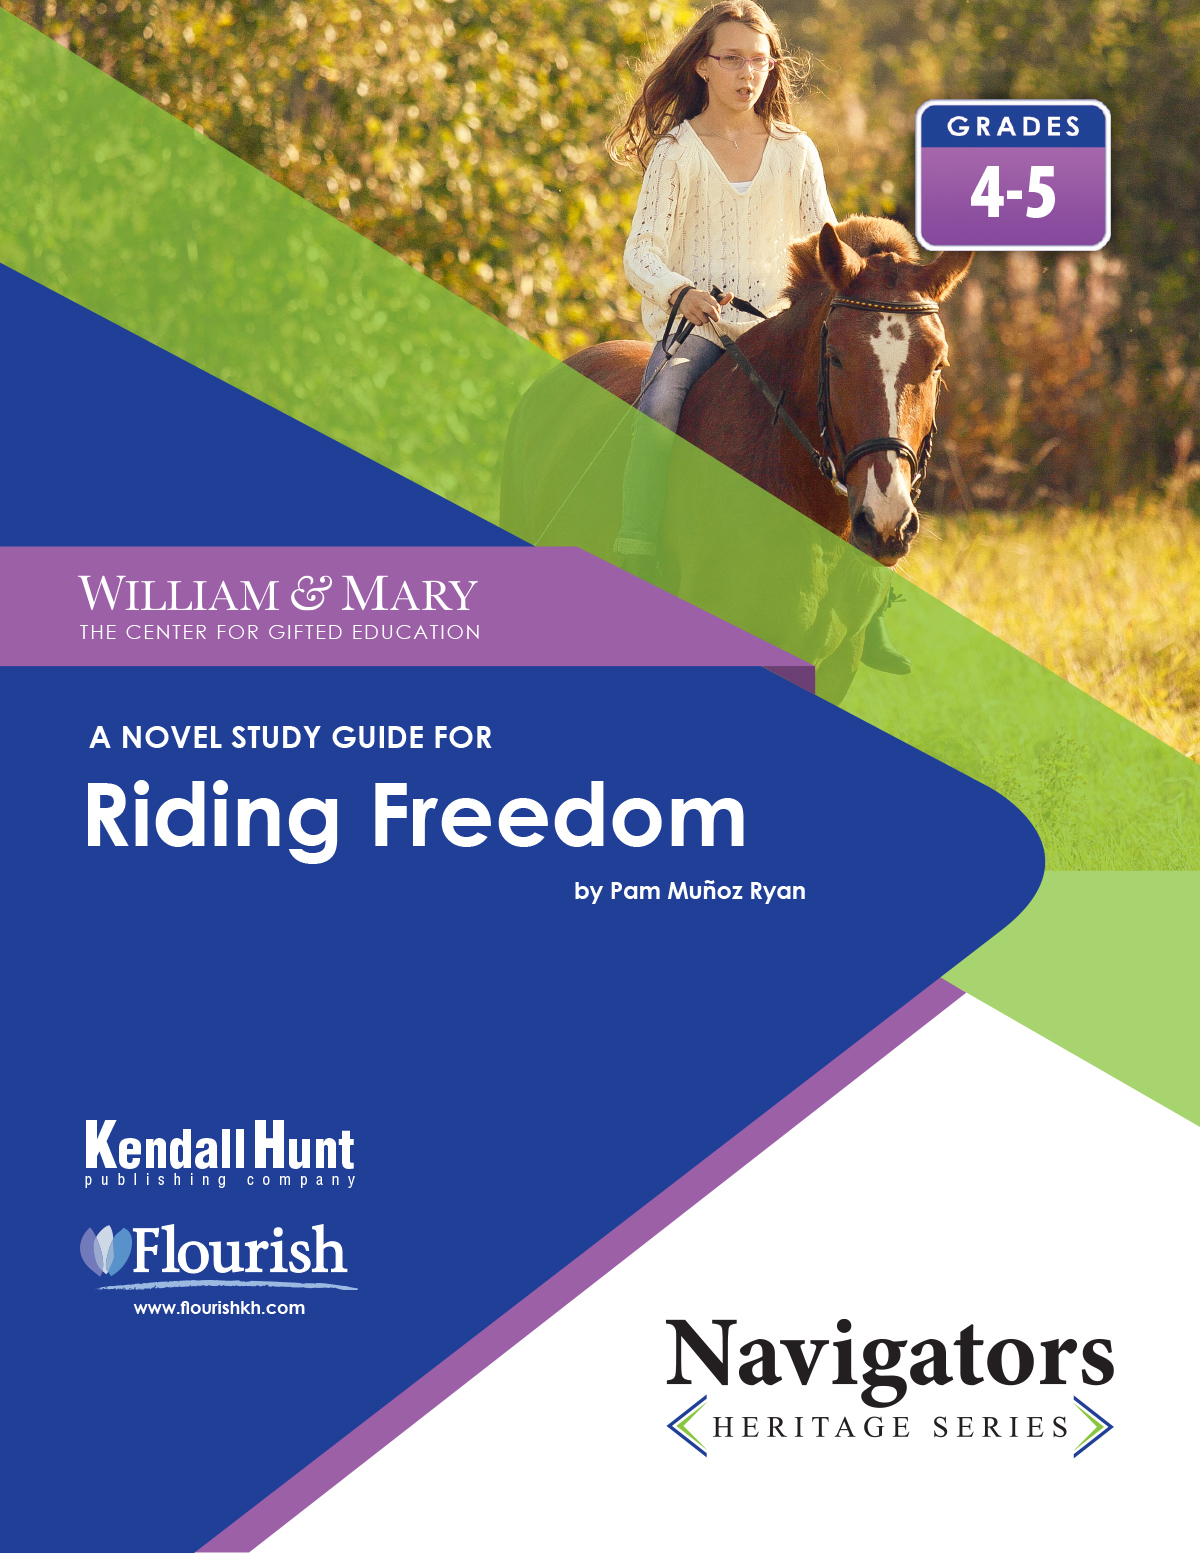 William & Mary Navigator Riding Freedom